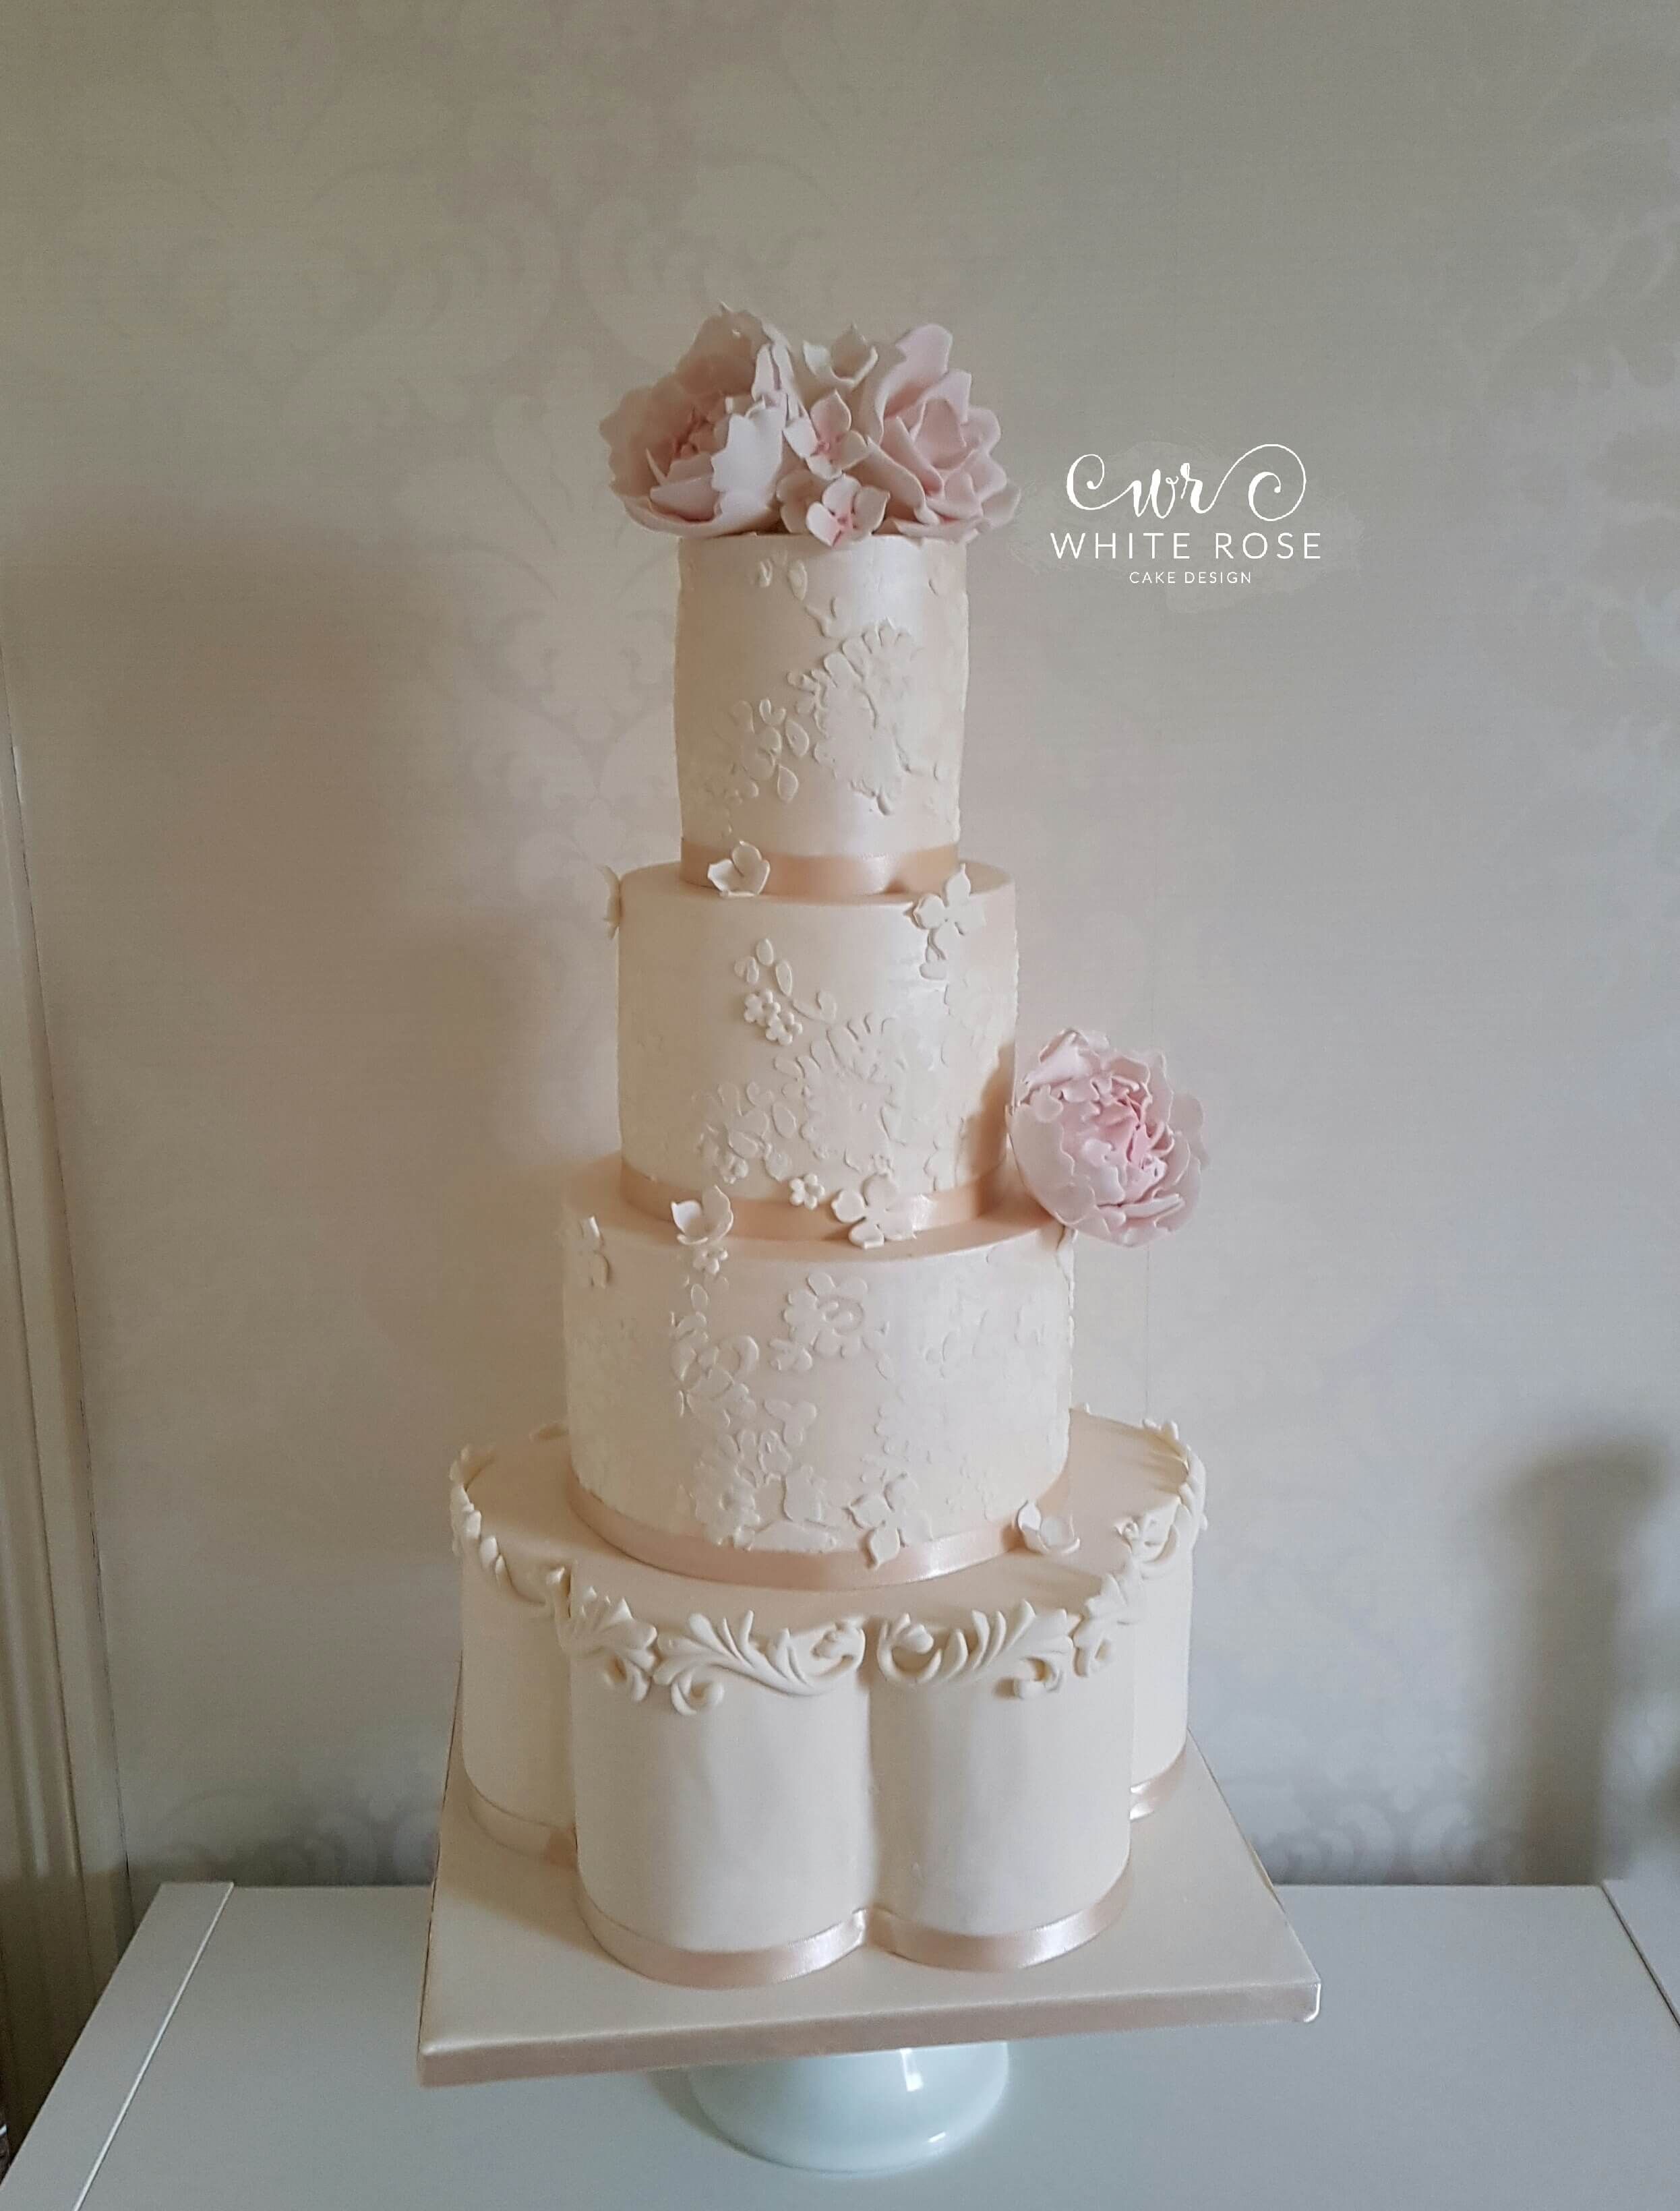 Lace and Blush Peonies Wedding Cake by White Rose Cake Design, Wedding Cakes in West Yorkshire